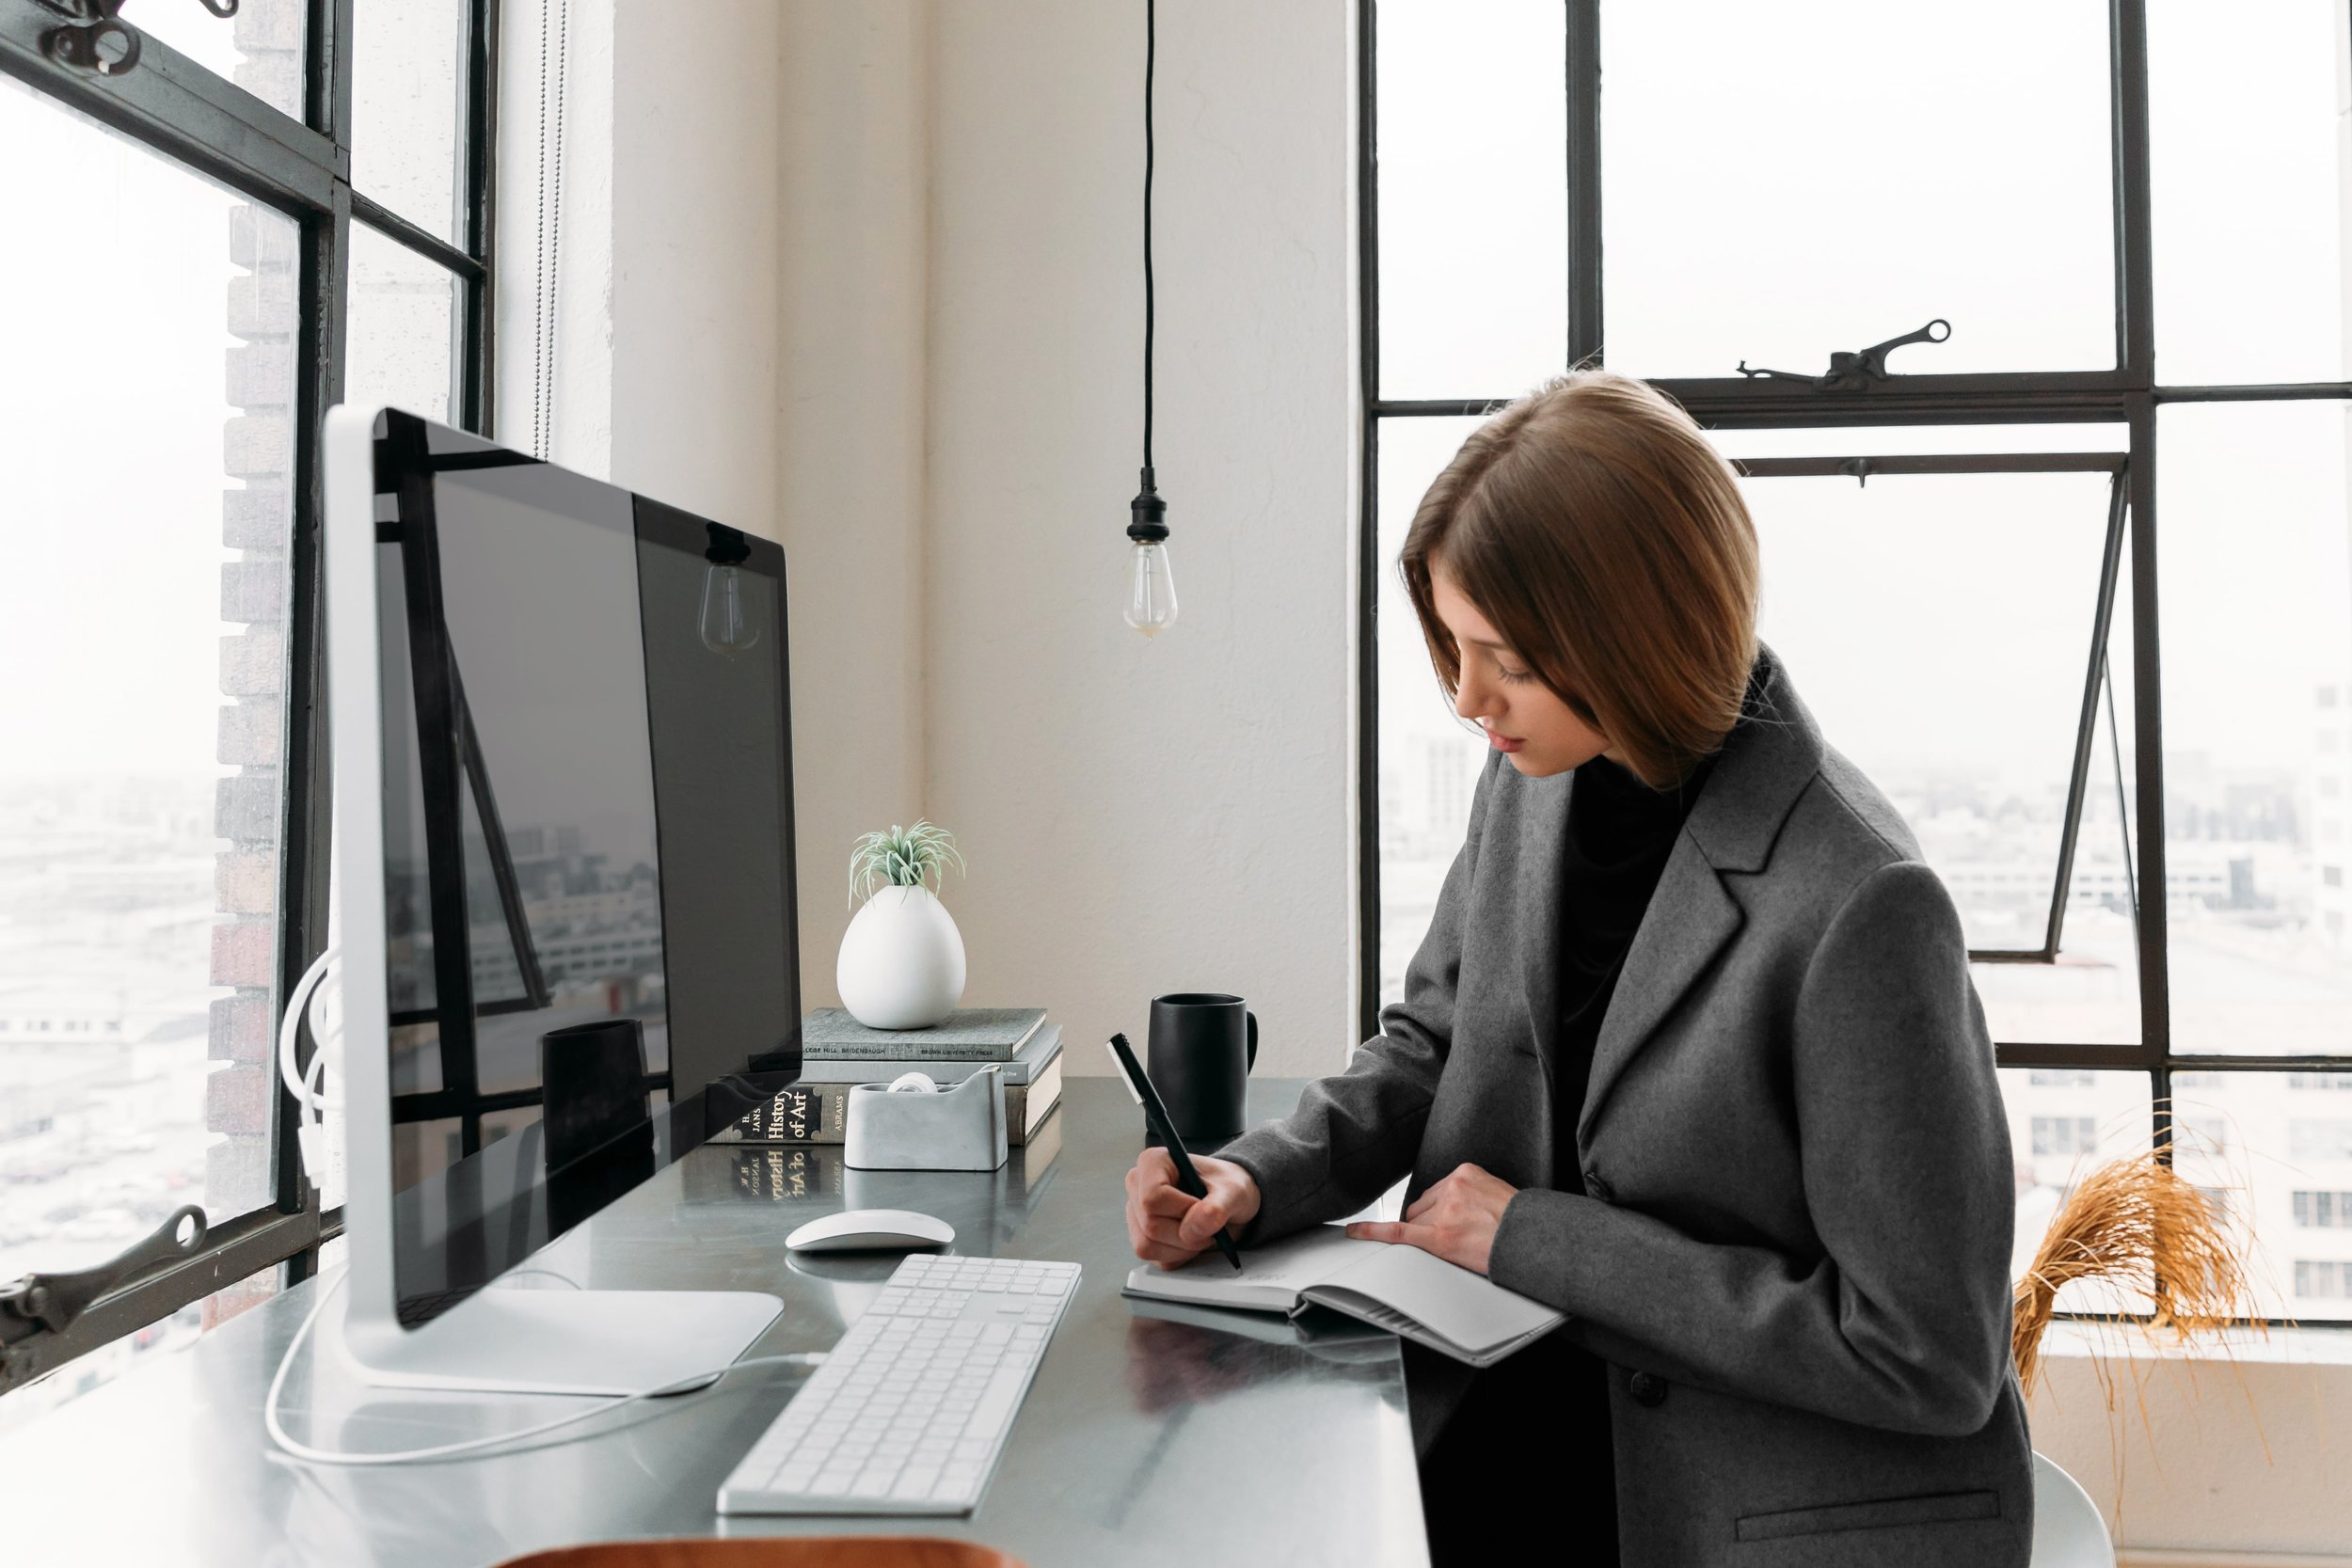 The advantages of a freelance law practice - The use of freelance attorneys is the leading law firm staffing strategy change since the recession.